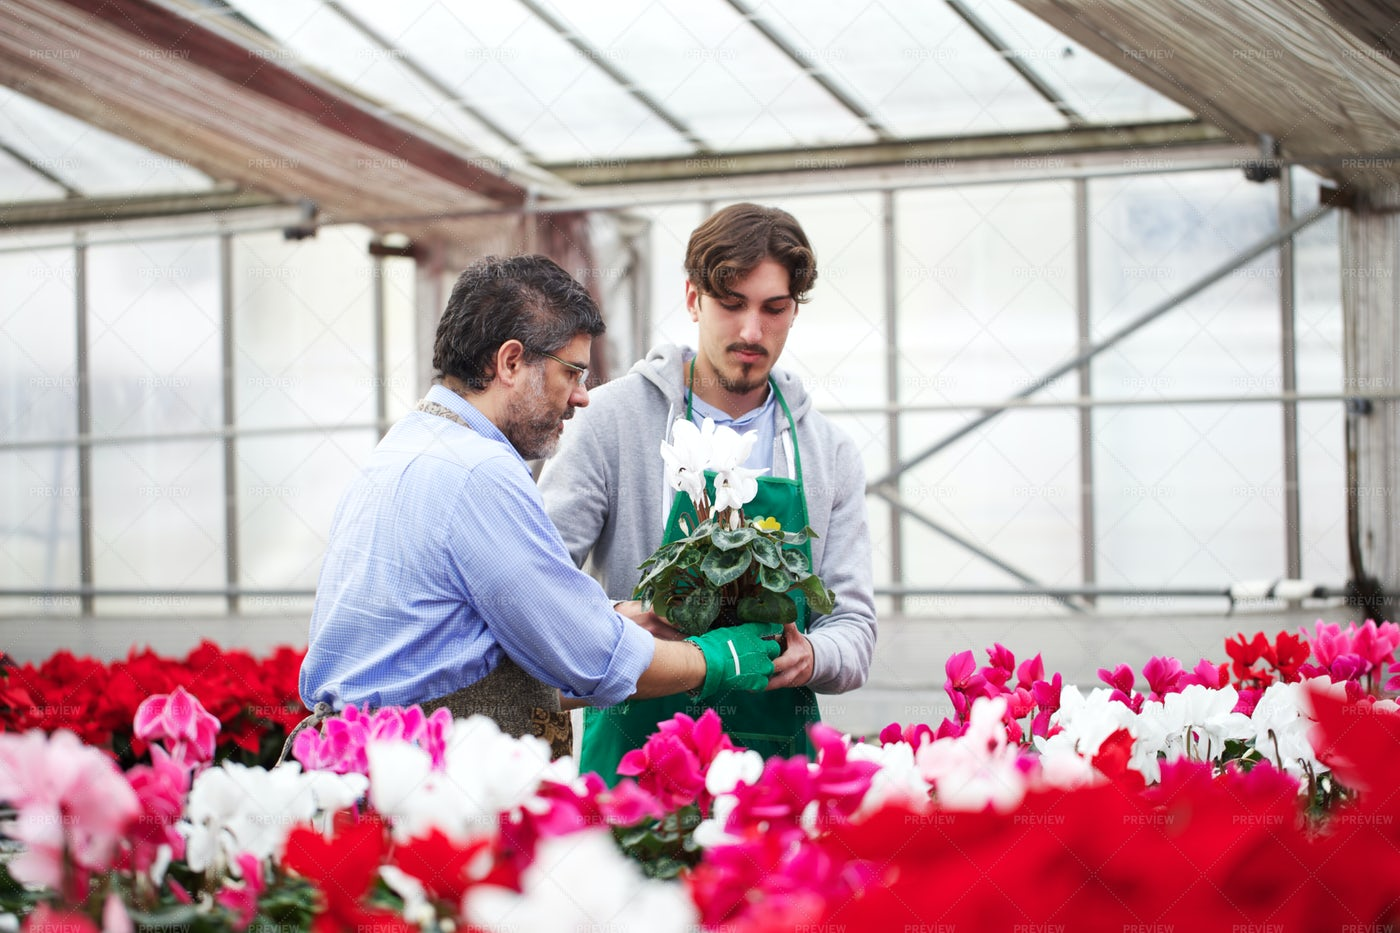 Working In A Plant Nursery: Stock Photos